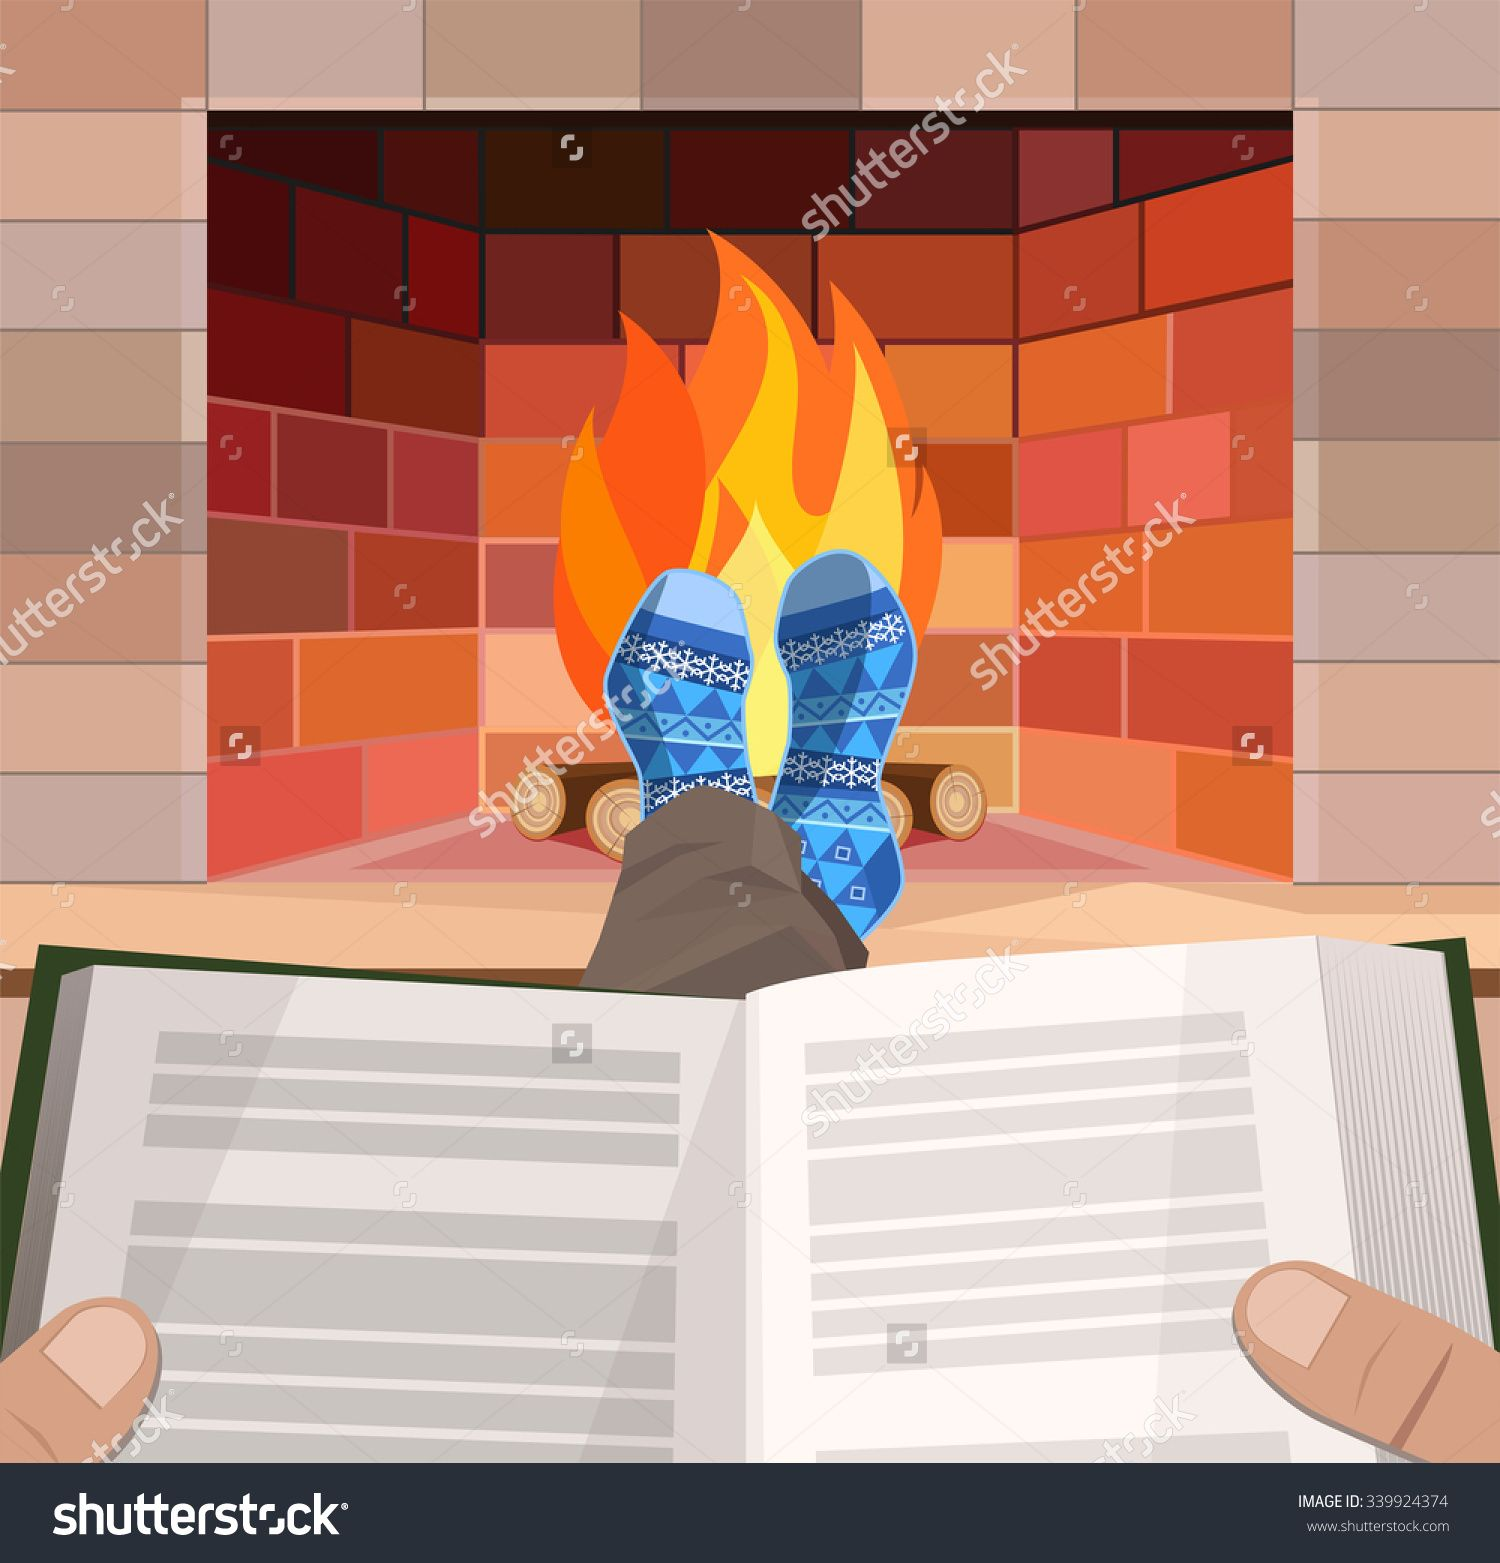 Man with the book lies in front of the fireplace, vector illustration